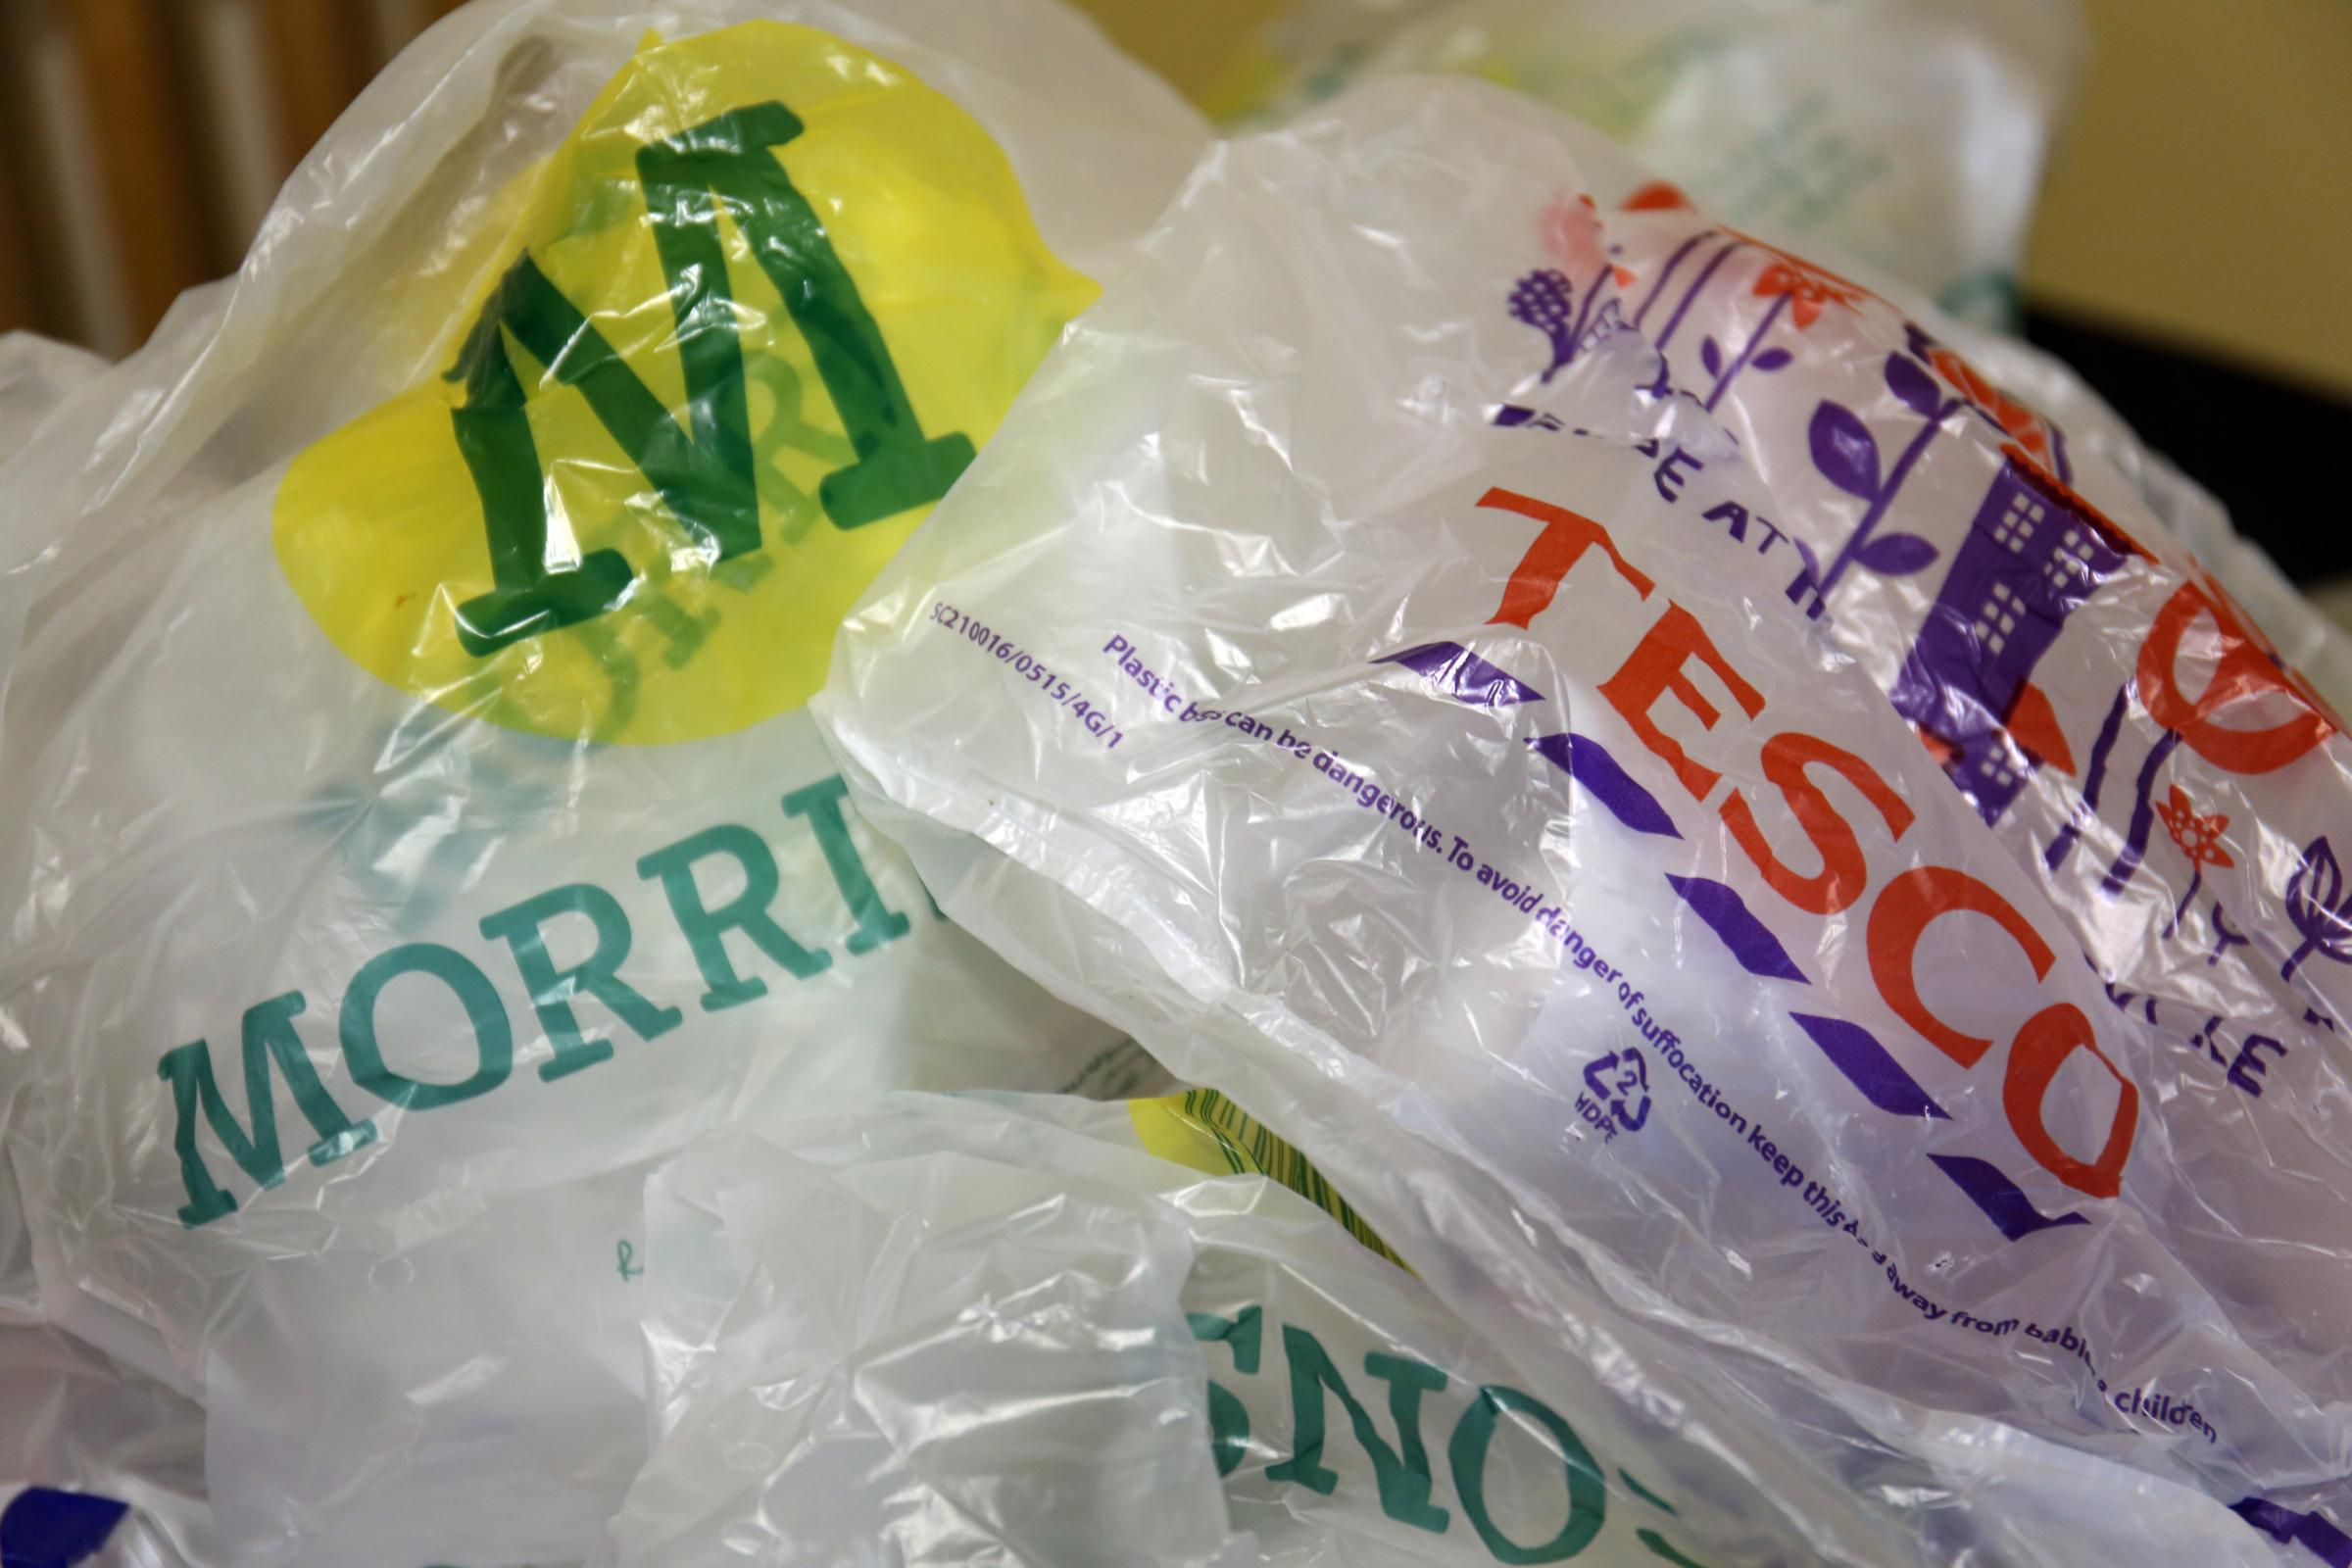 More needs to be done about single use plastic, argues Mike Fry